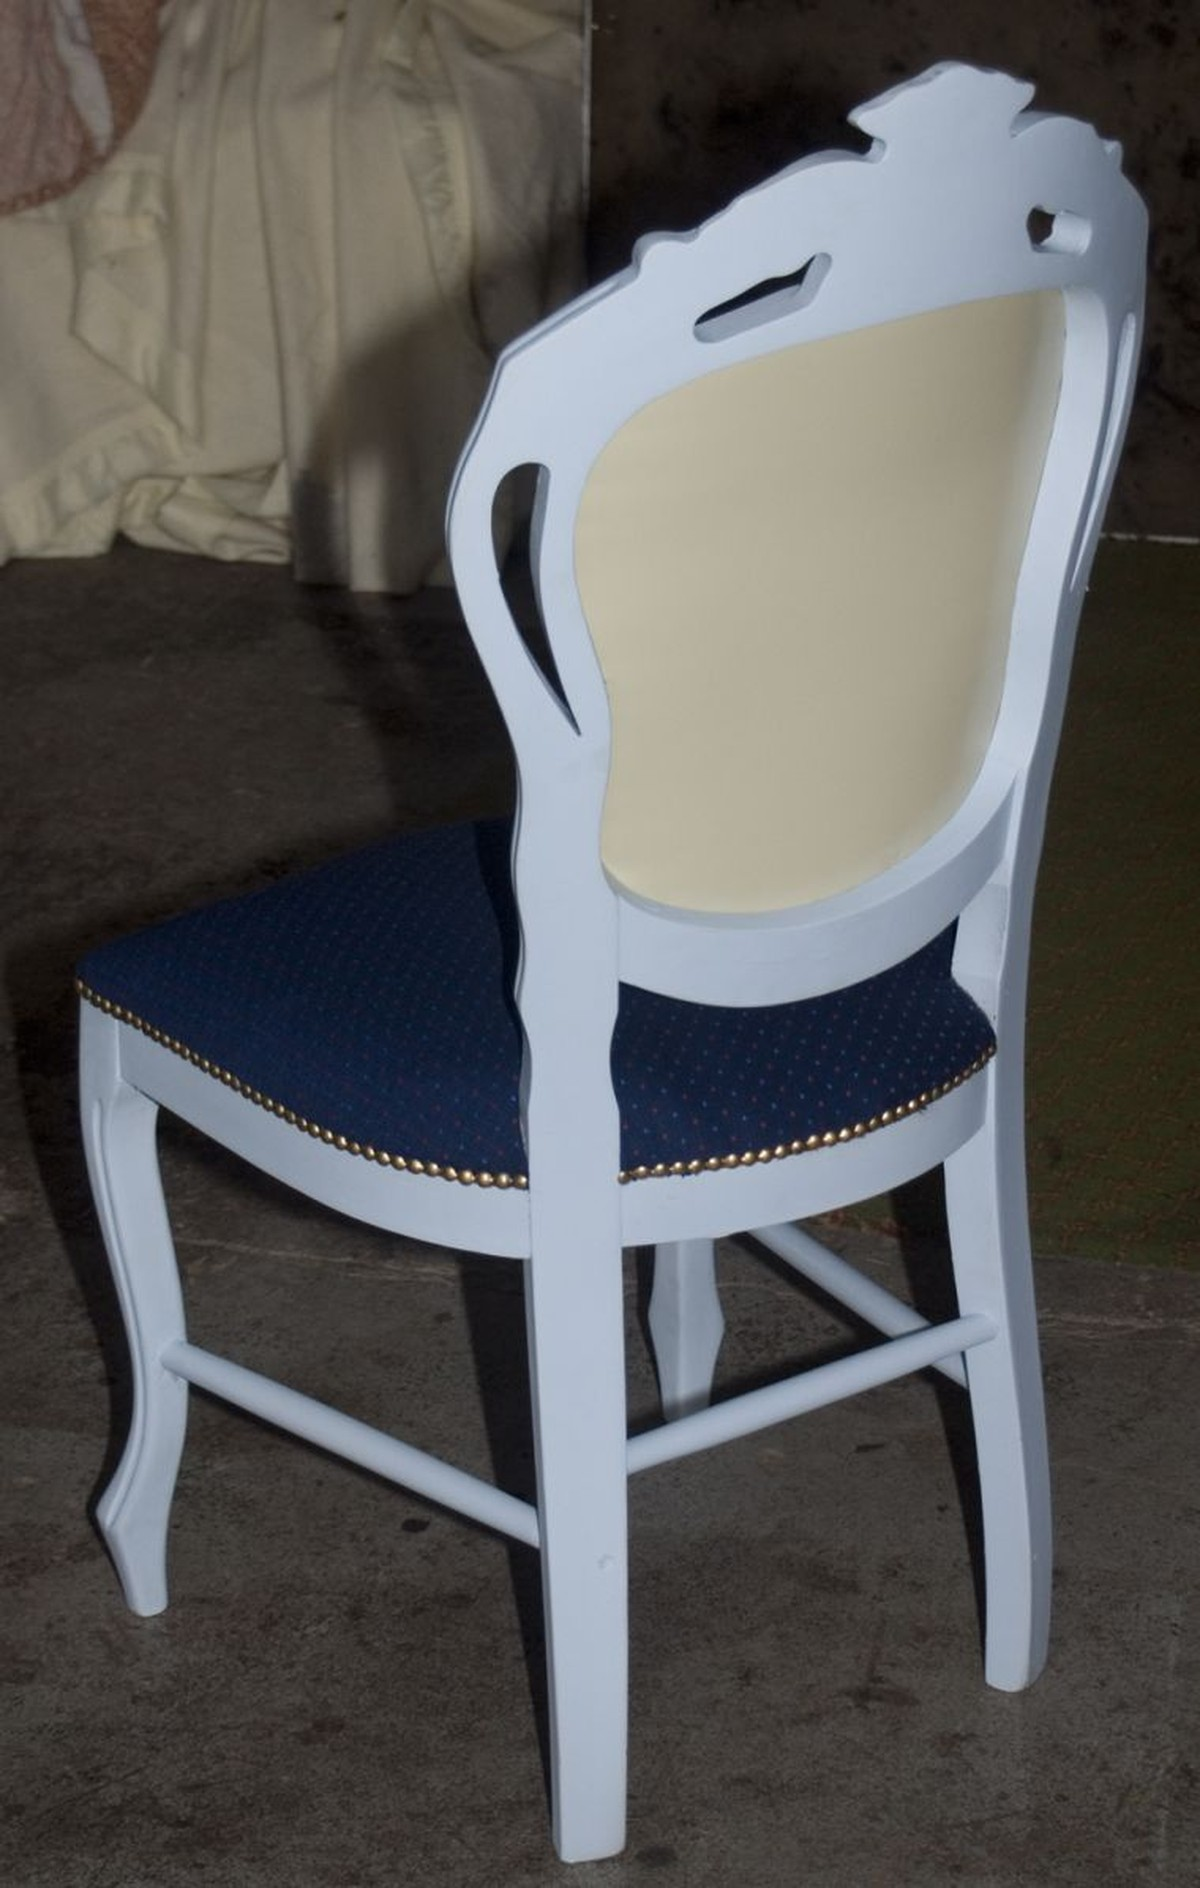 Secondhand Hotel Furniture Banquet Chair Vintage Sky Blue Chair With Blue Upholstery Shabby Chic French Style Peterborough Cambridgeshire